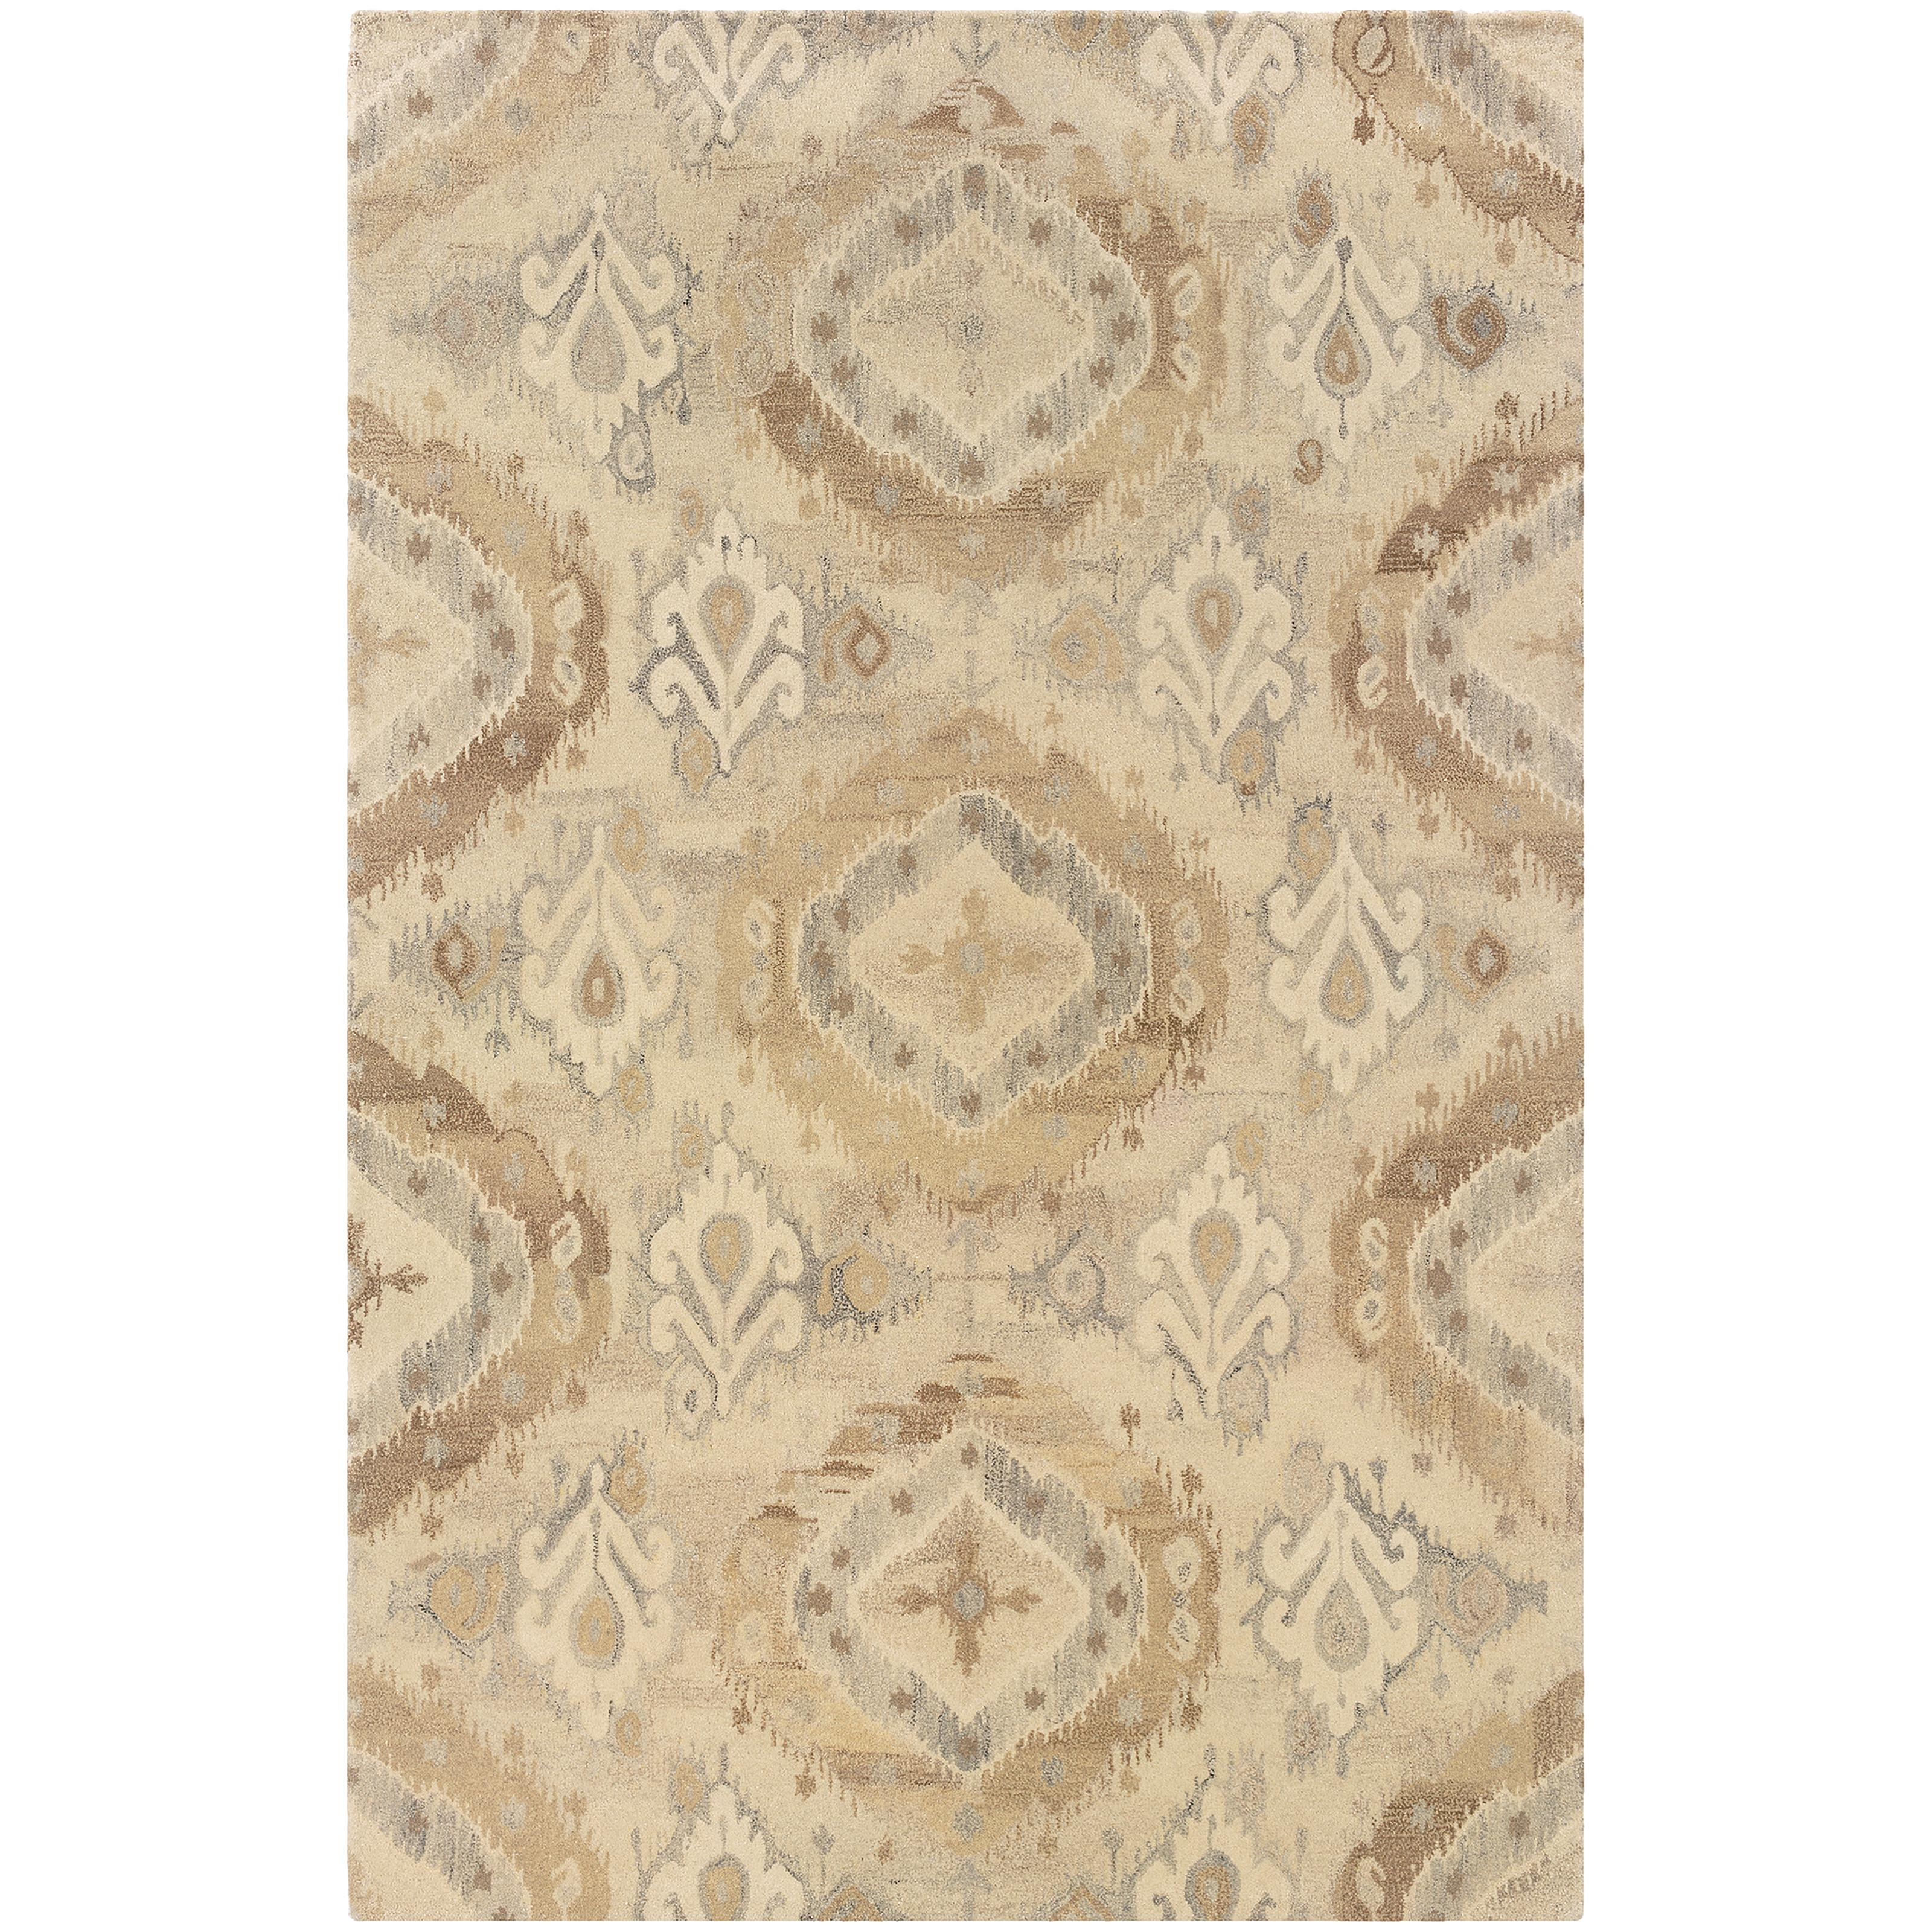 "Anastasia 10' 0"" X 13' 0"" Rug by Oriental Weavers at Steger's Furniture"